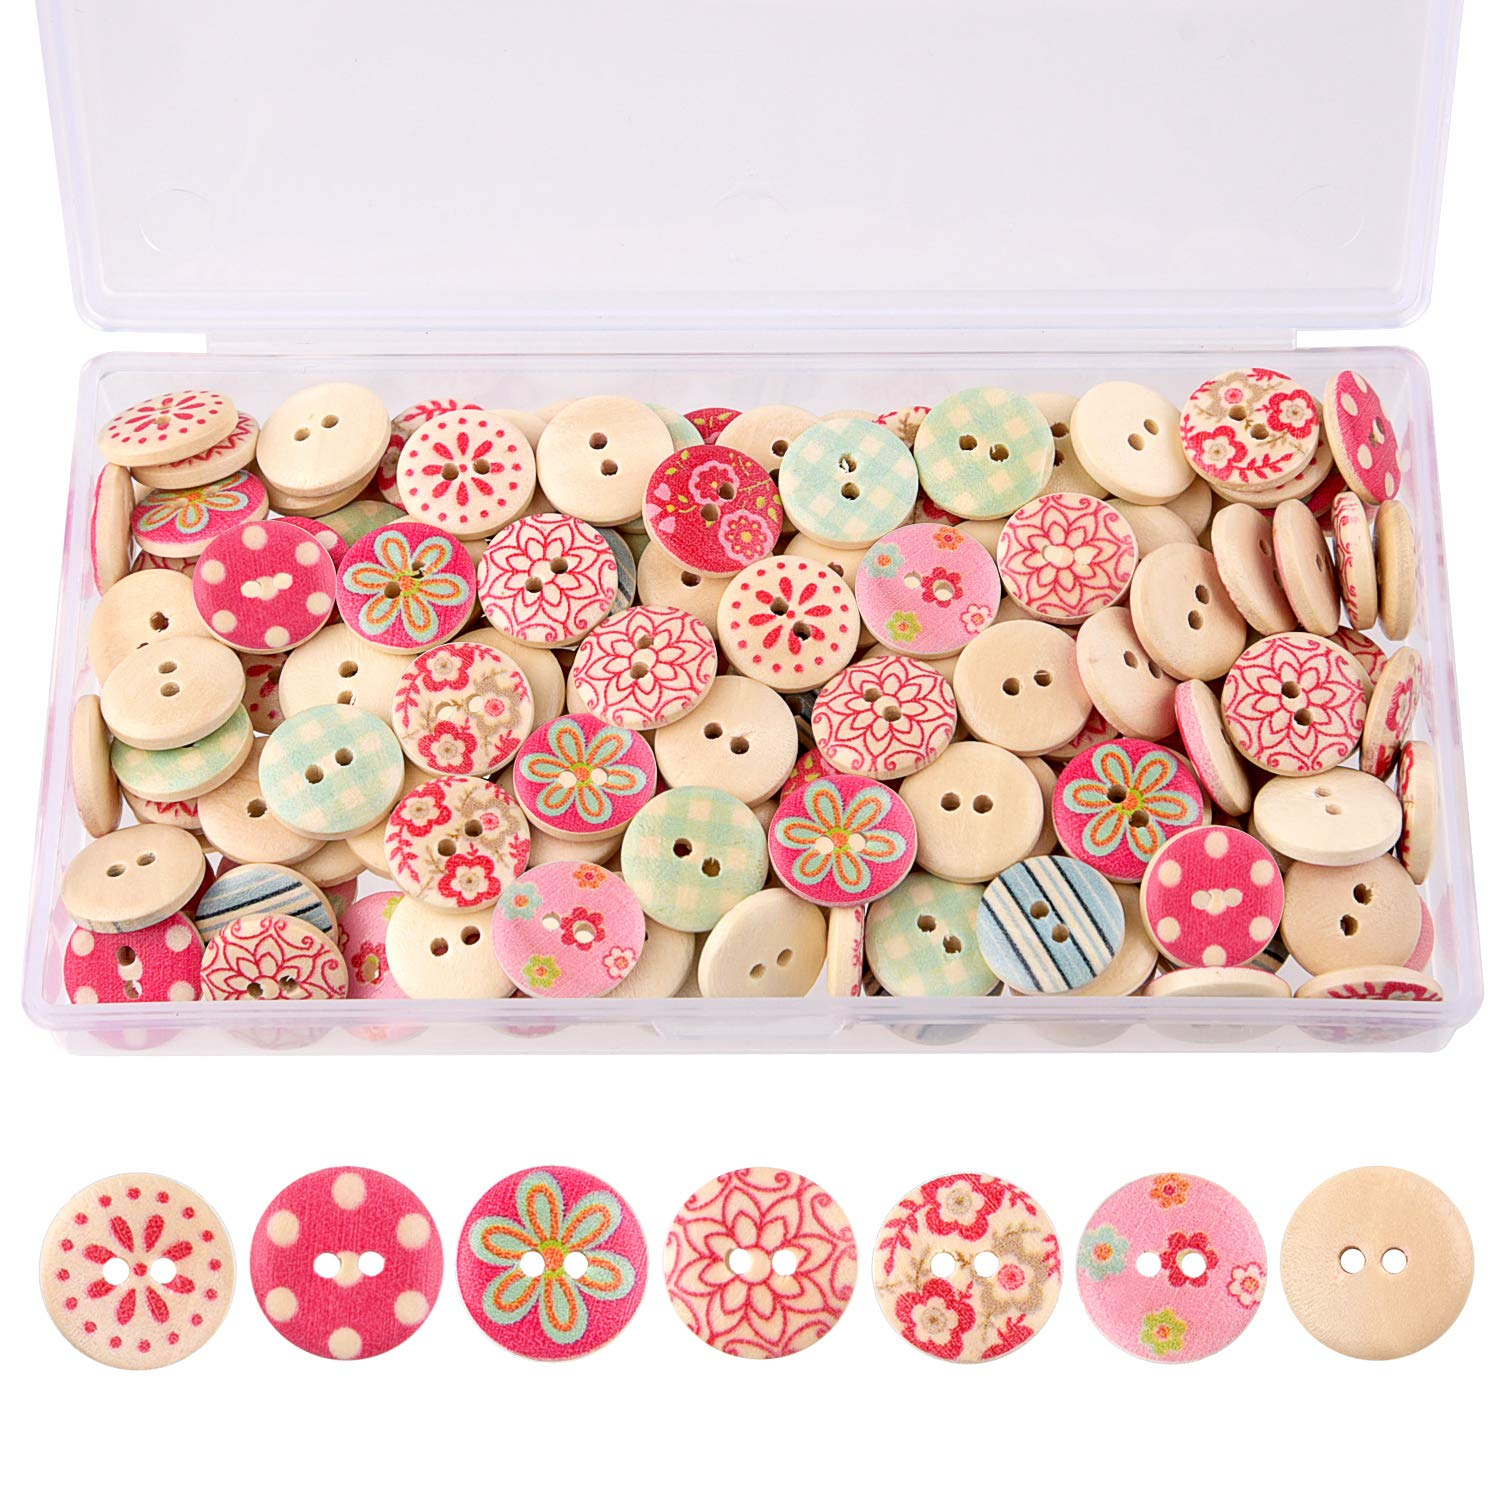 TUPARKA 170 Pcs Wooden Buttons Painted Colors Button for Sewing Craft Decorations White 15mm Round Shape